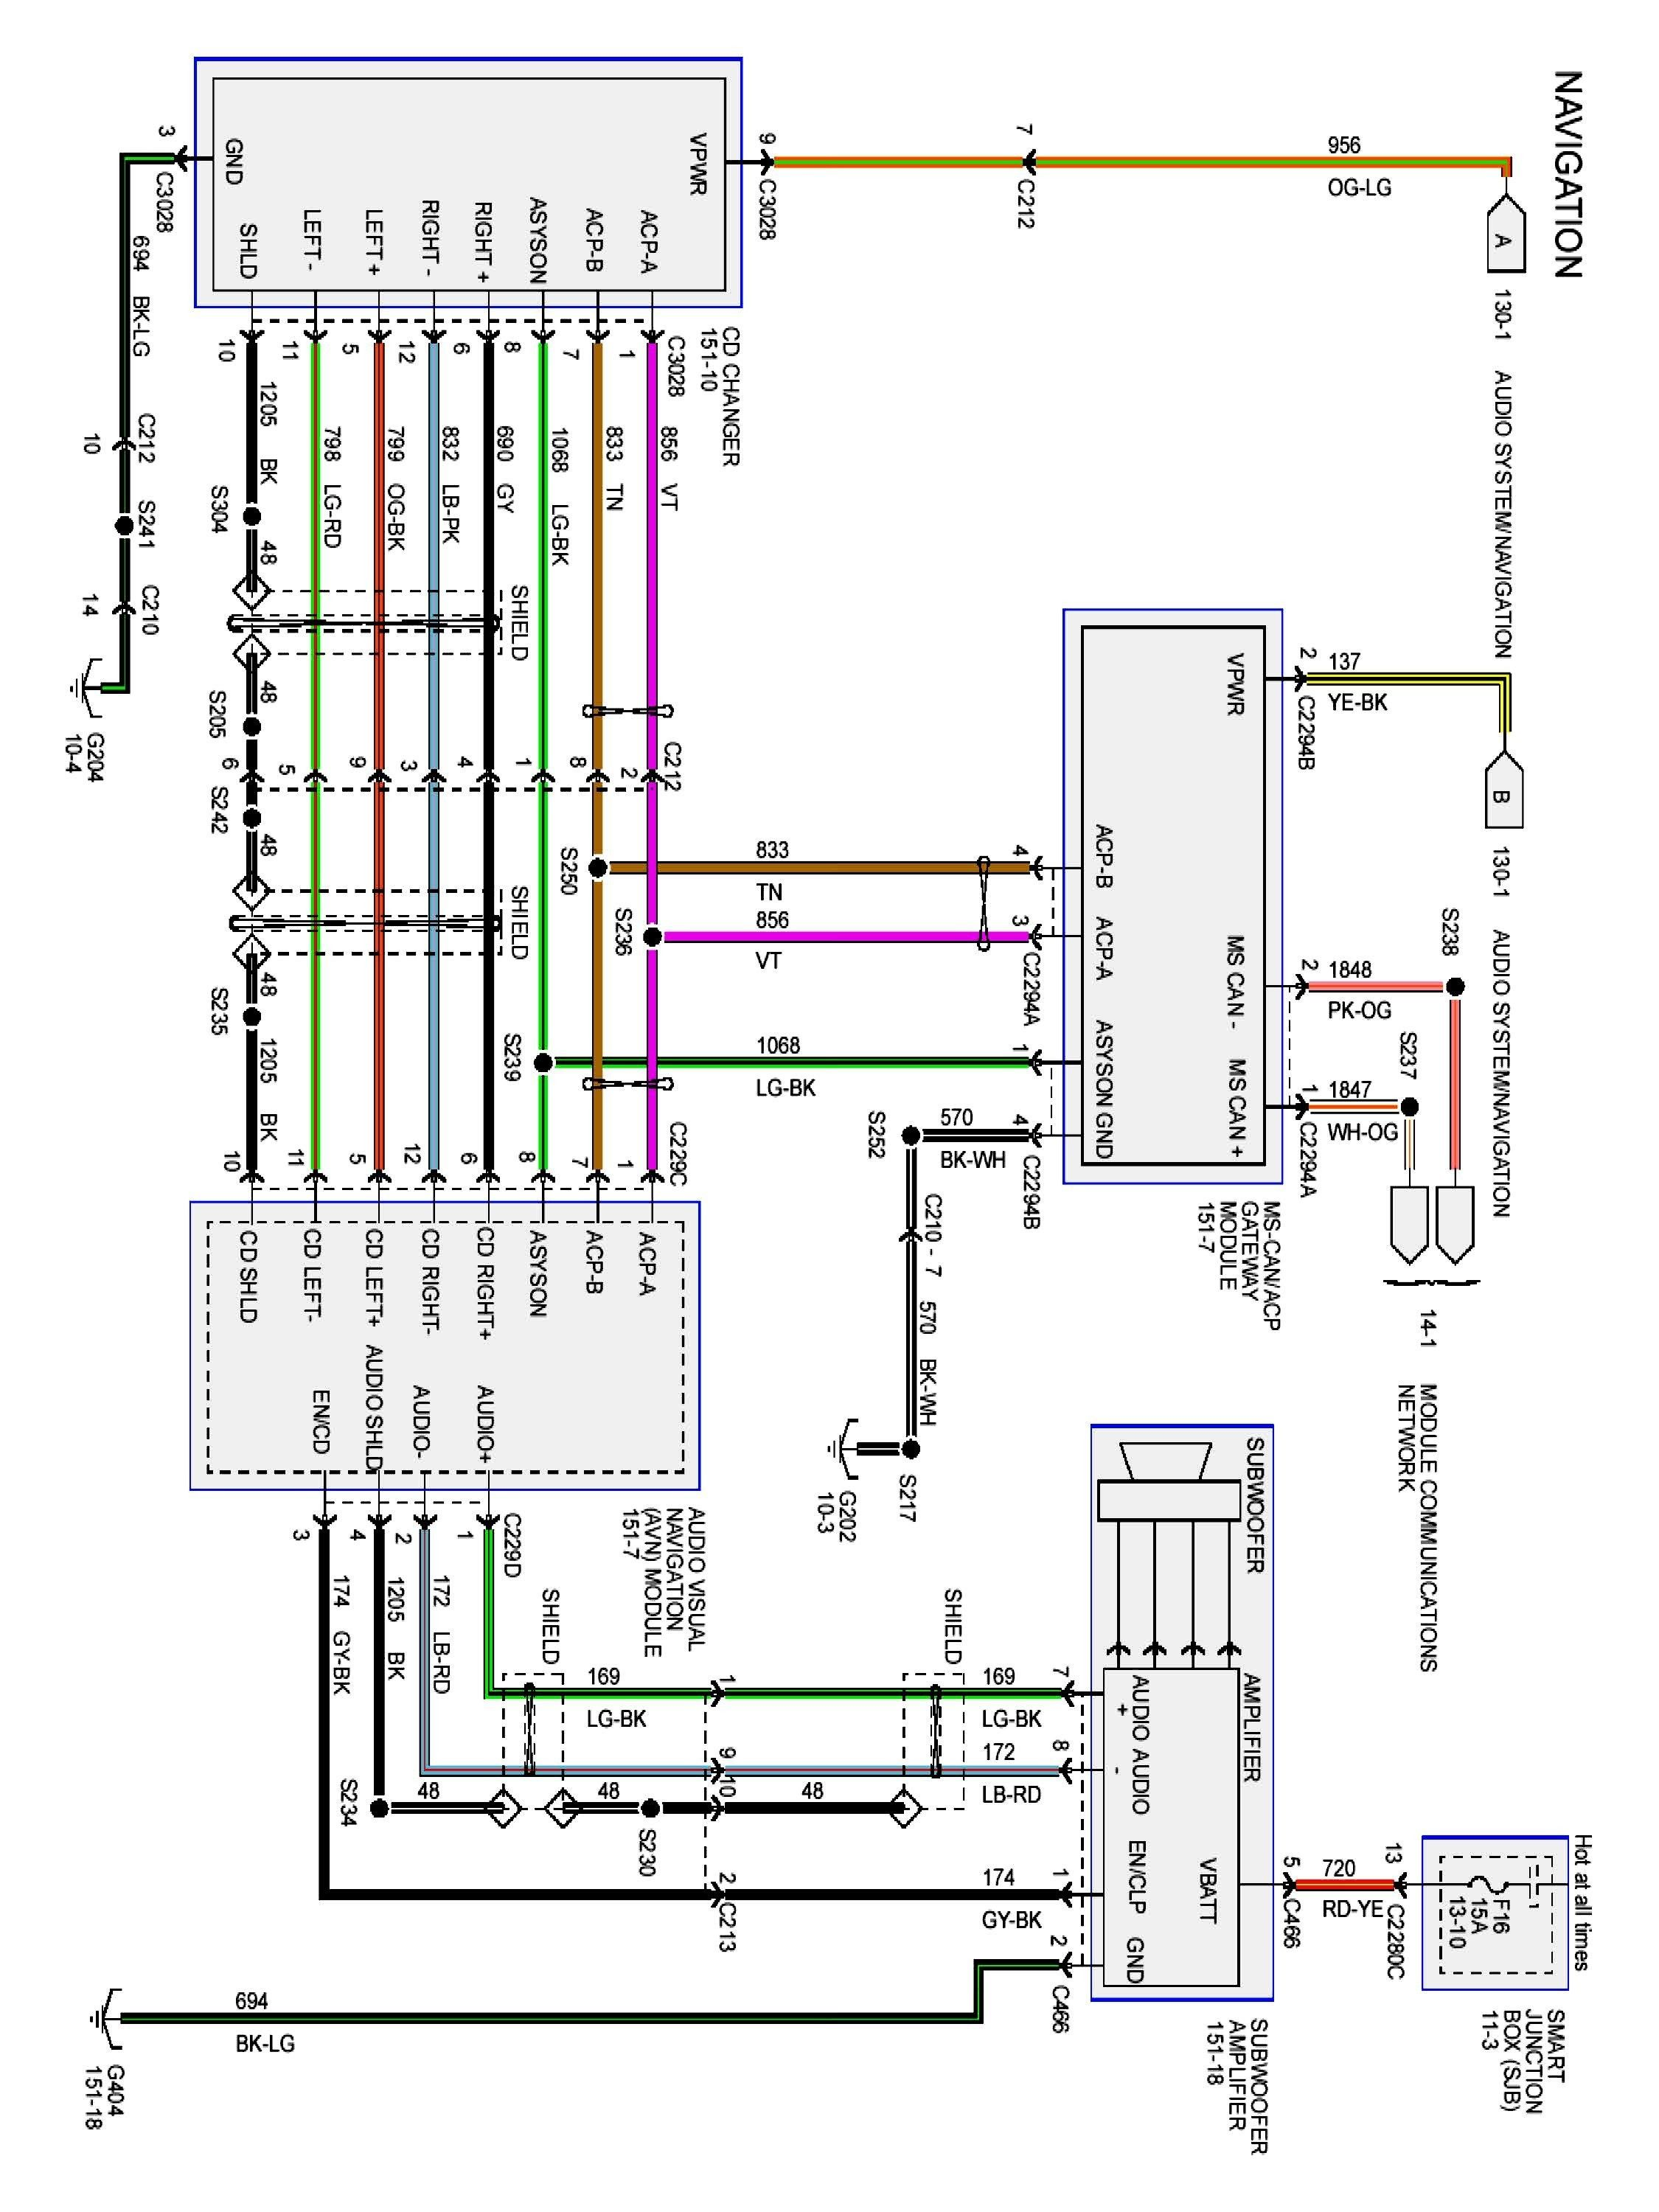 2007 Ford Expedition Wiring Diagram from i.pinimg.com